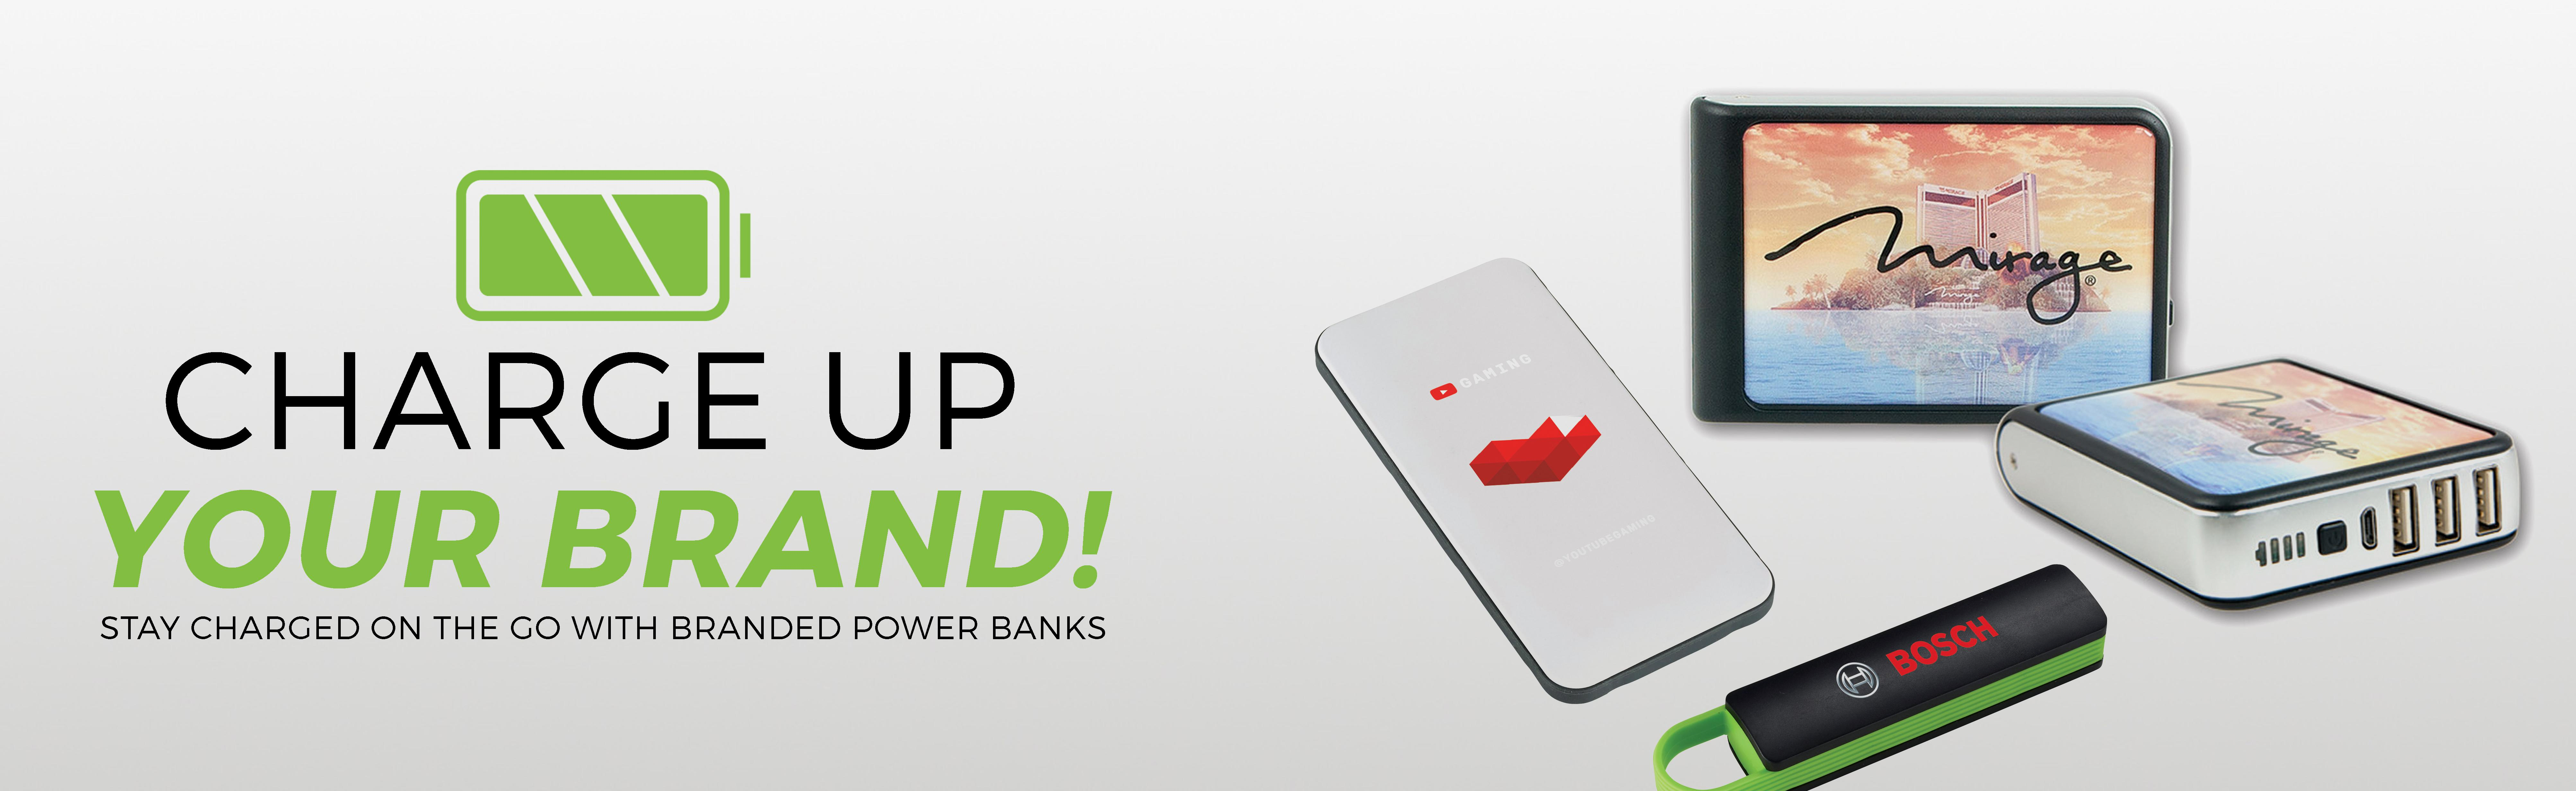 Branded Power Banks Charge Up